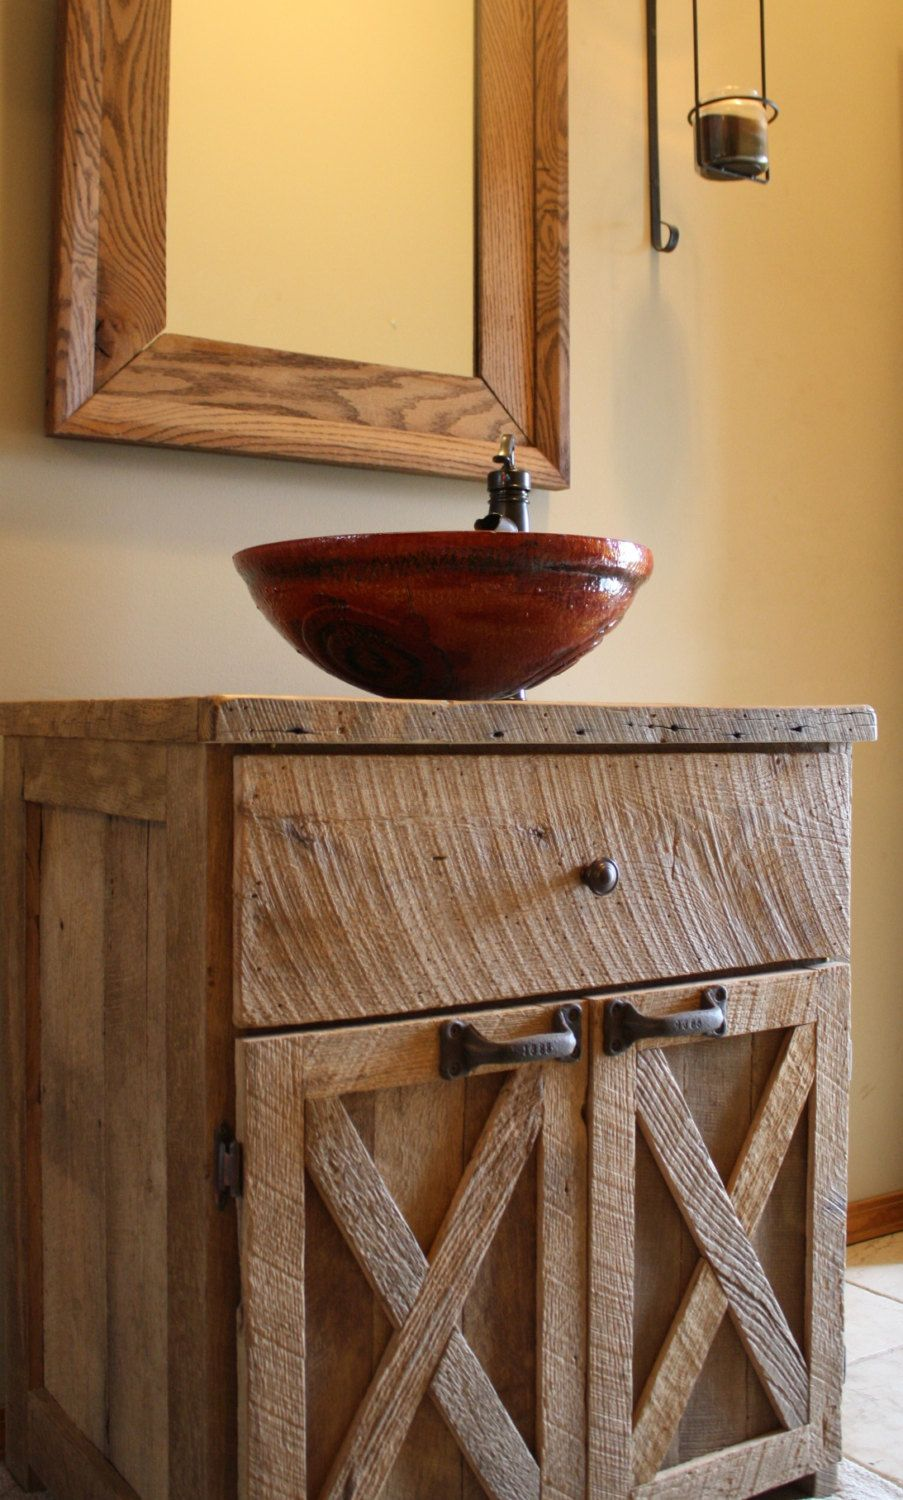 Western Bathroom Vanities The Cool Rustic Bathroom Vanities